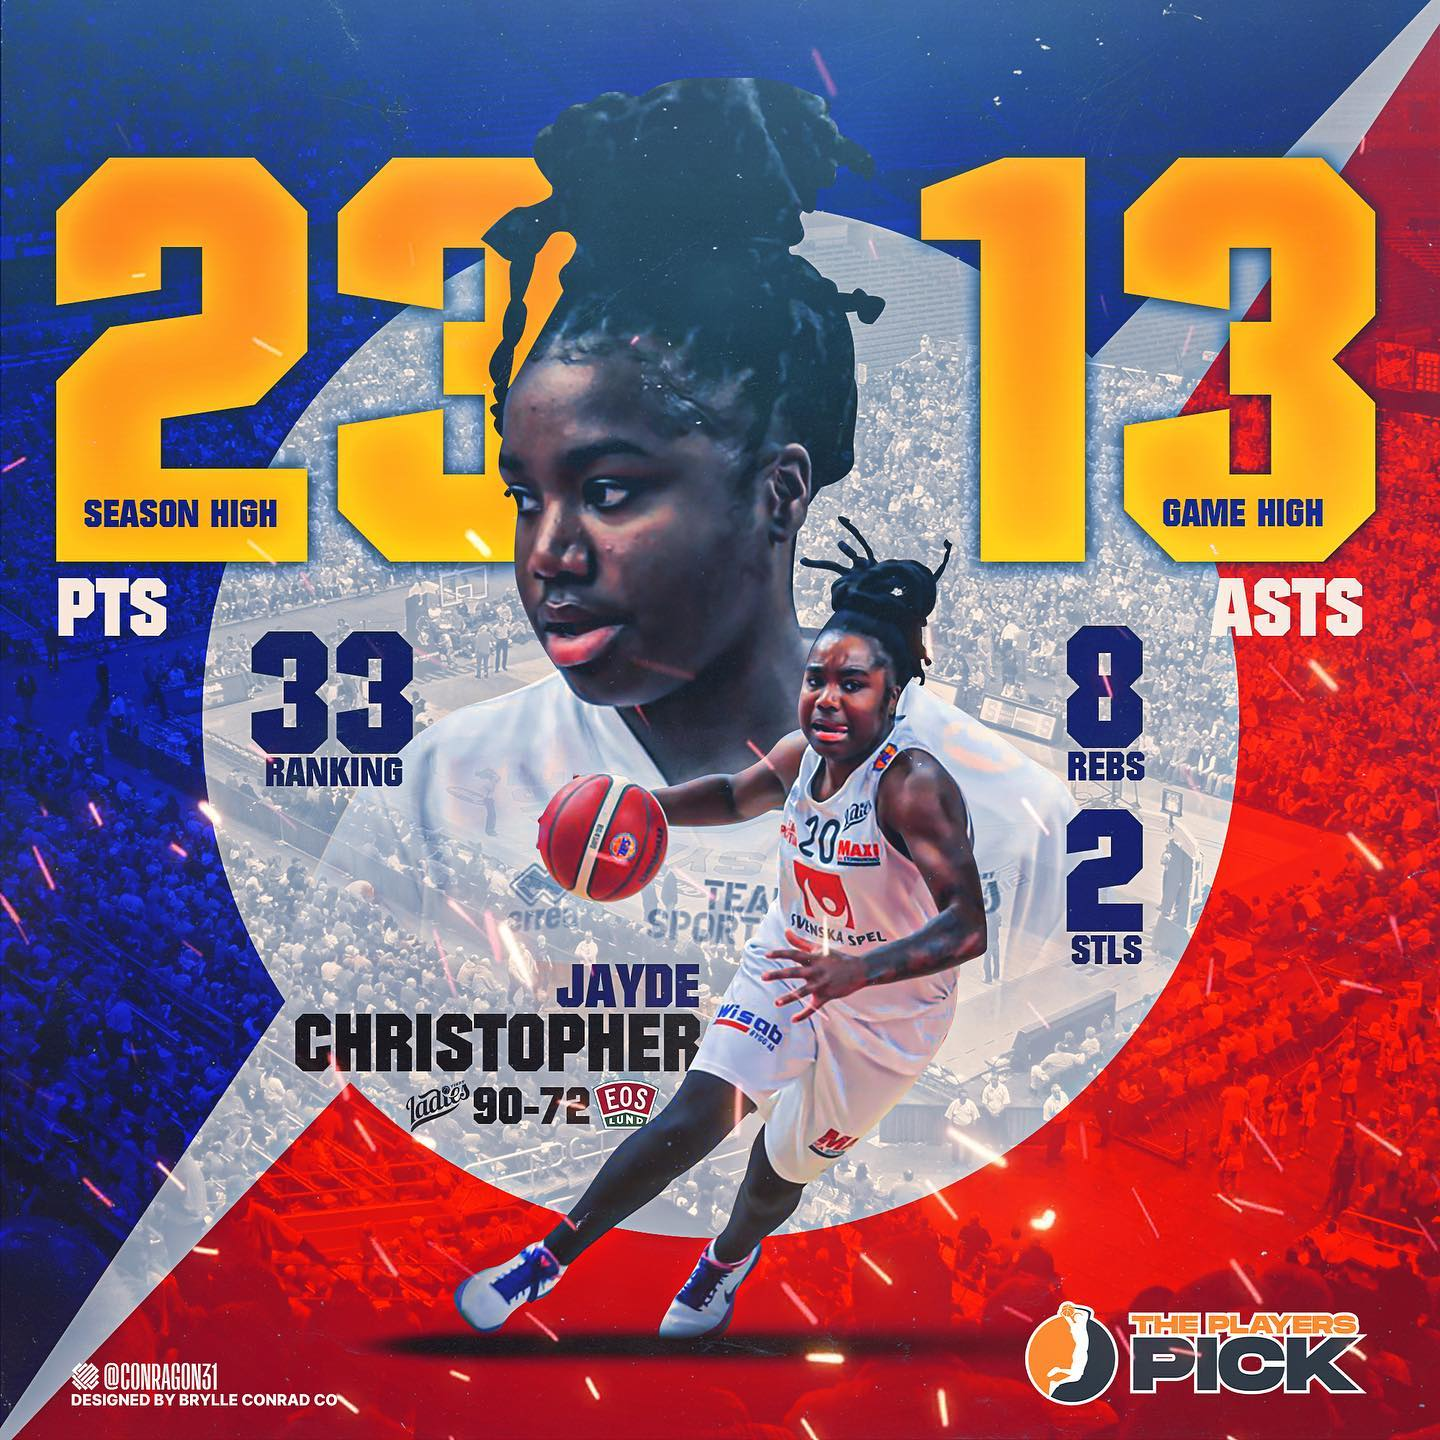 Showtime Jayde Christopher vs EOS with 23 points – 13 assists & 8 rebounds!